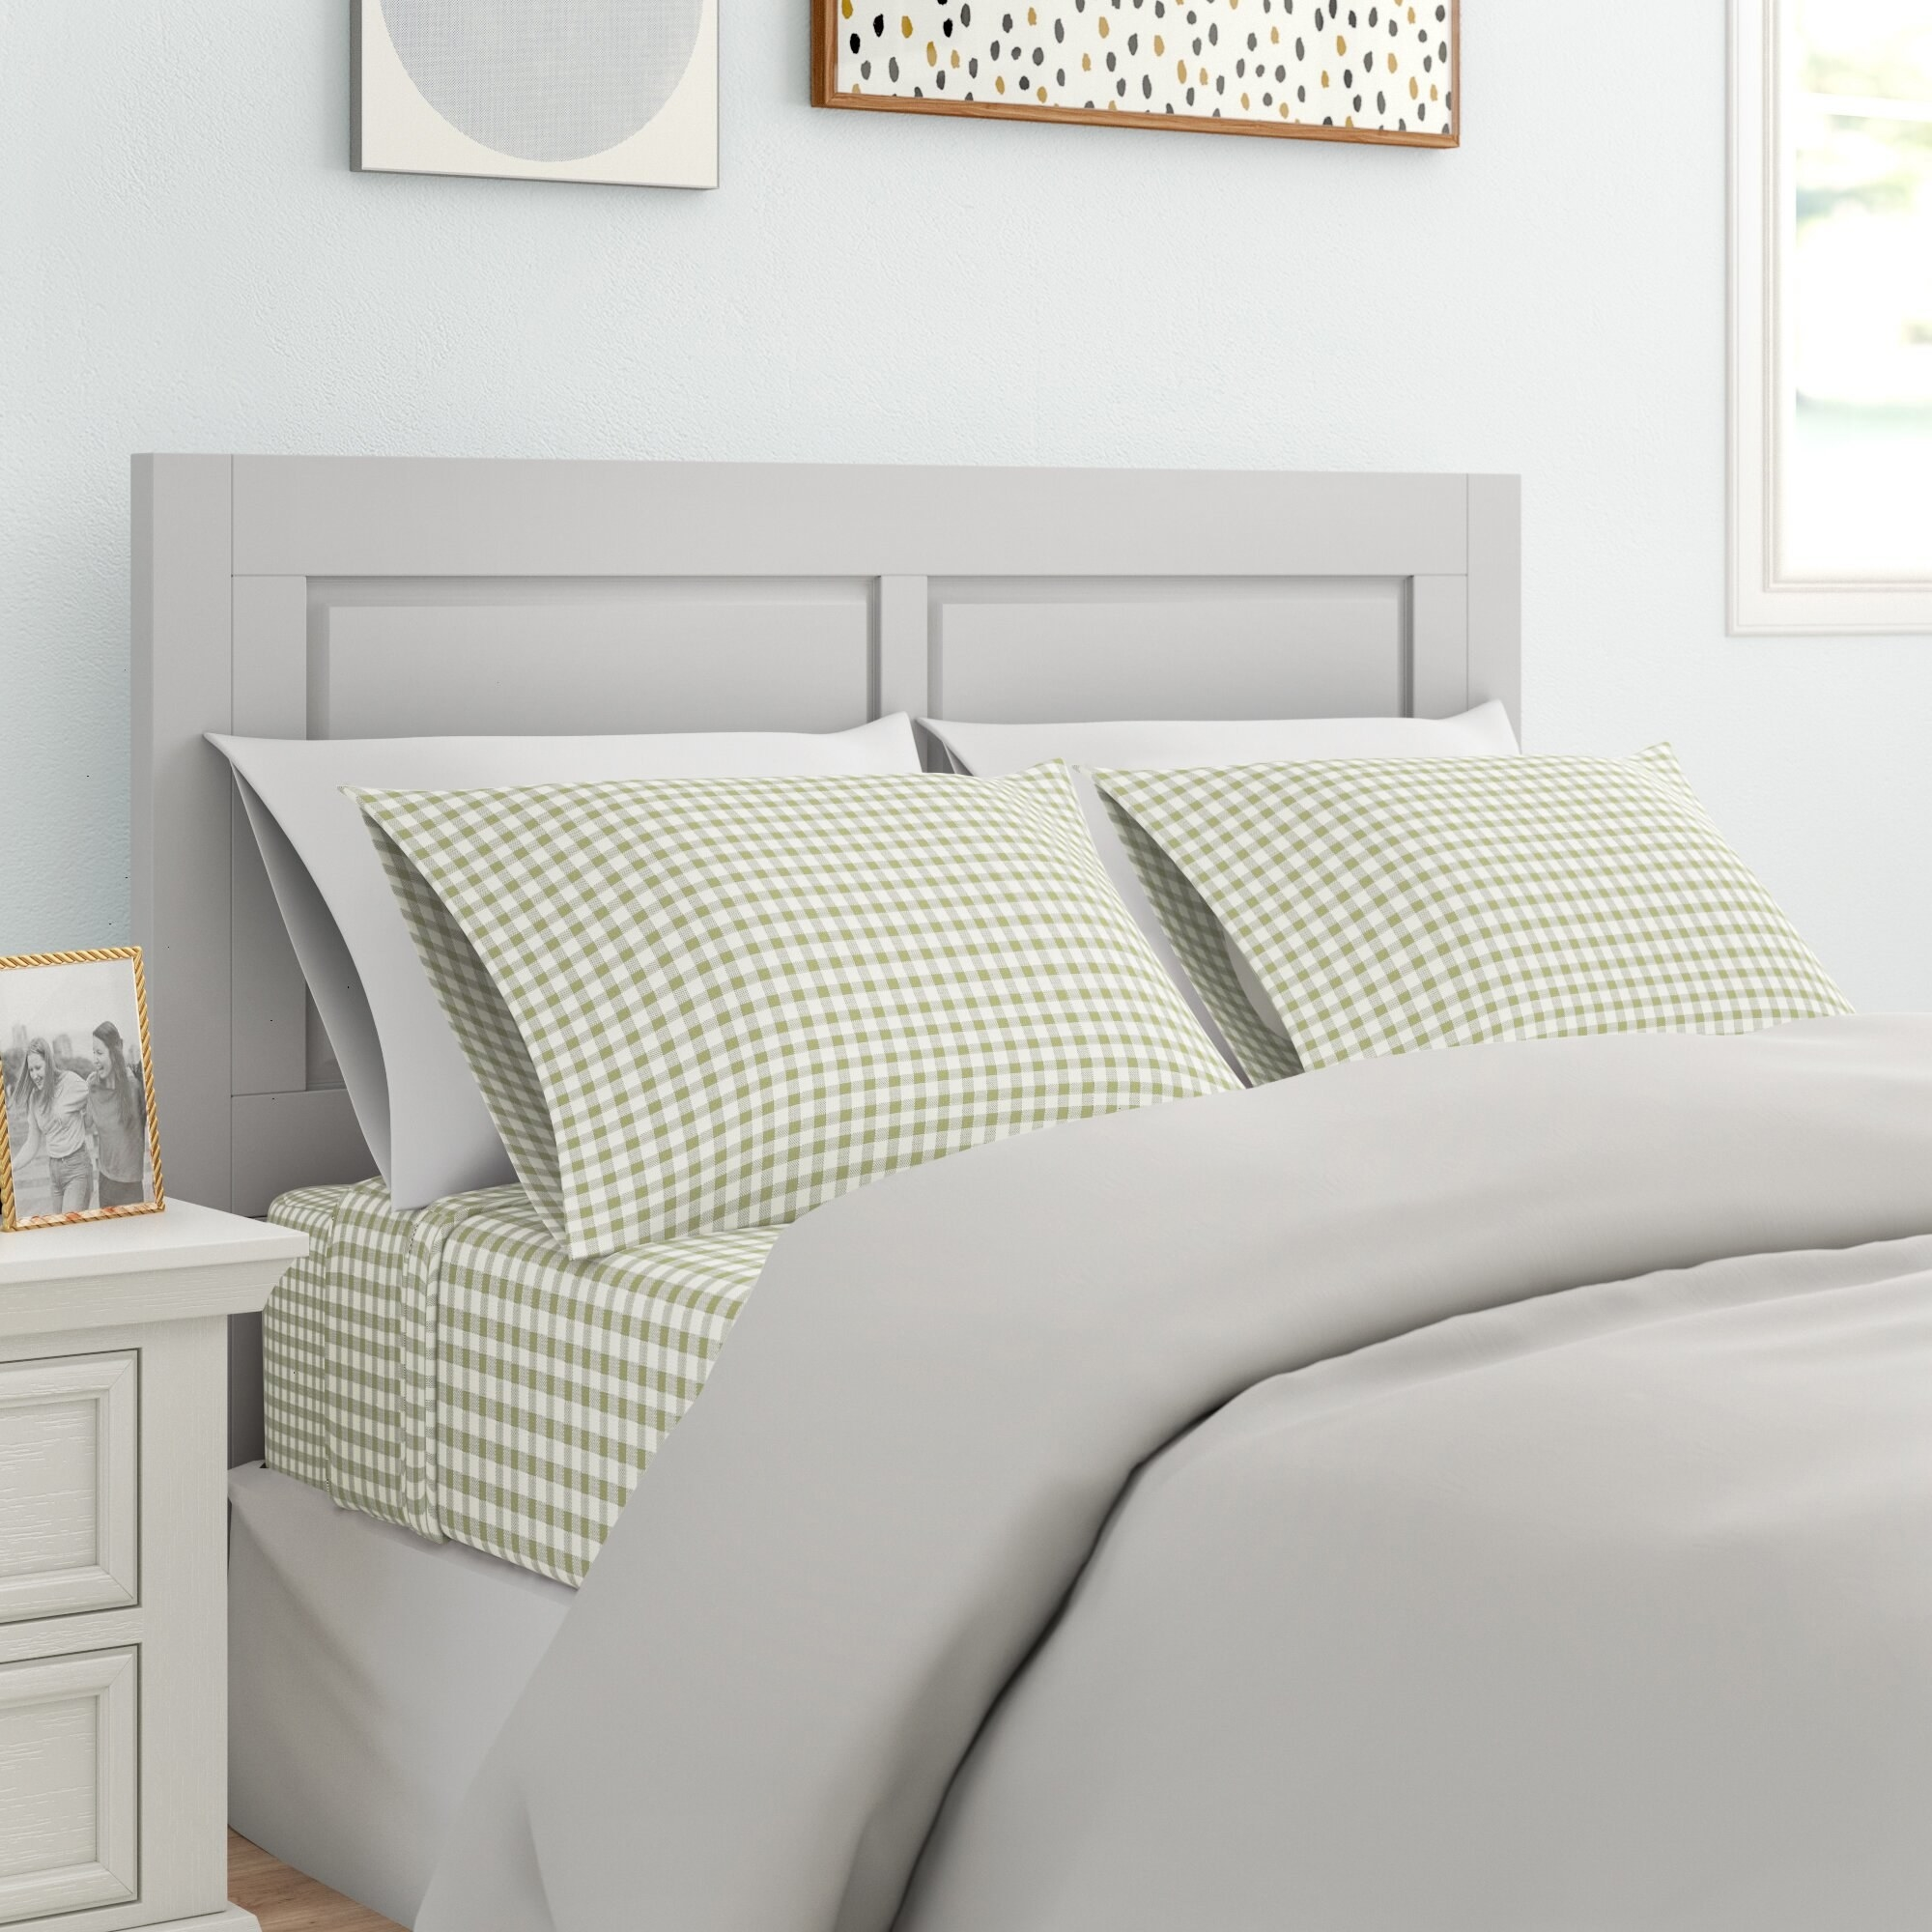 Gingham sheets on bed